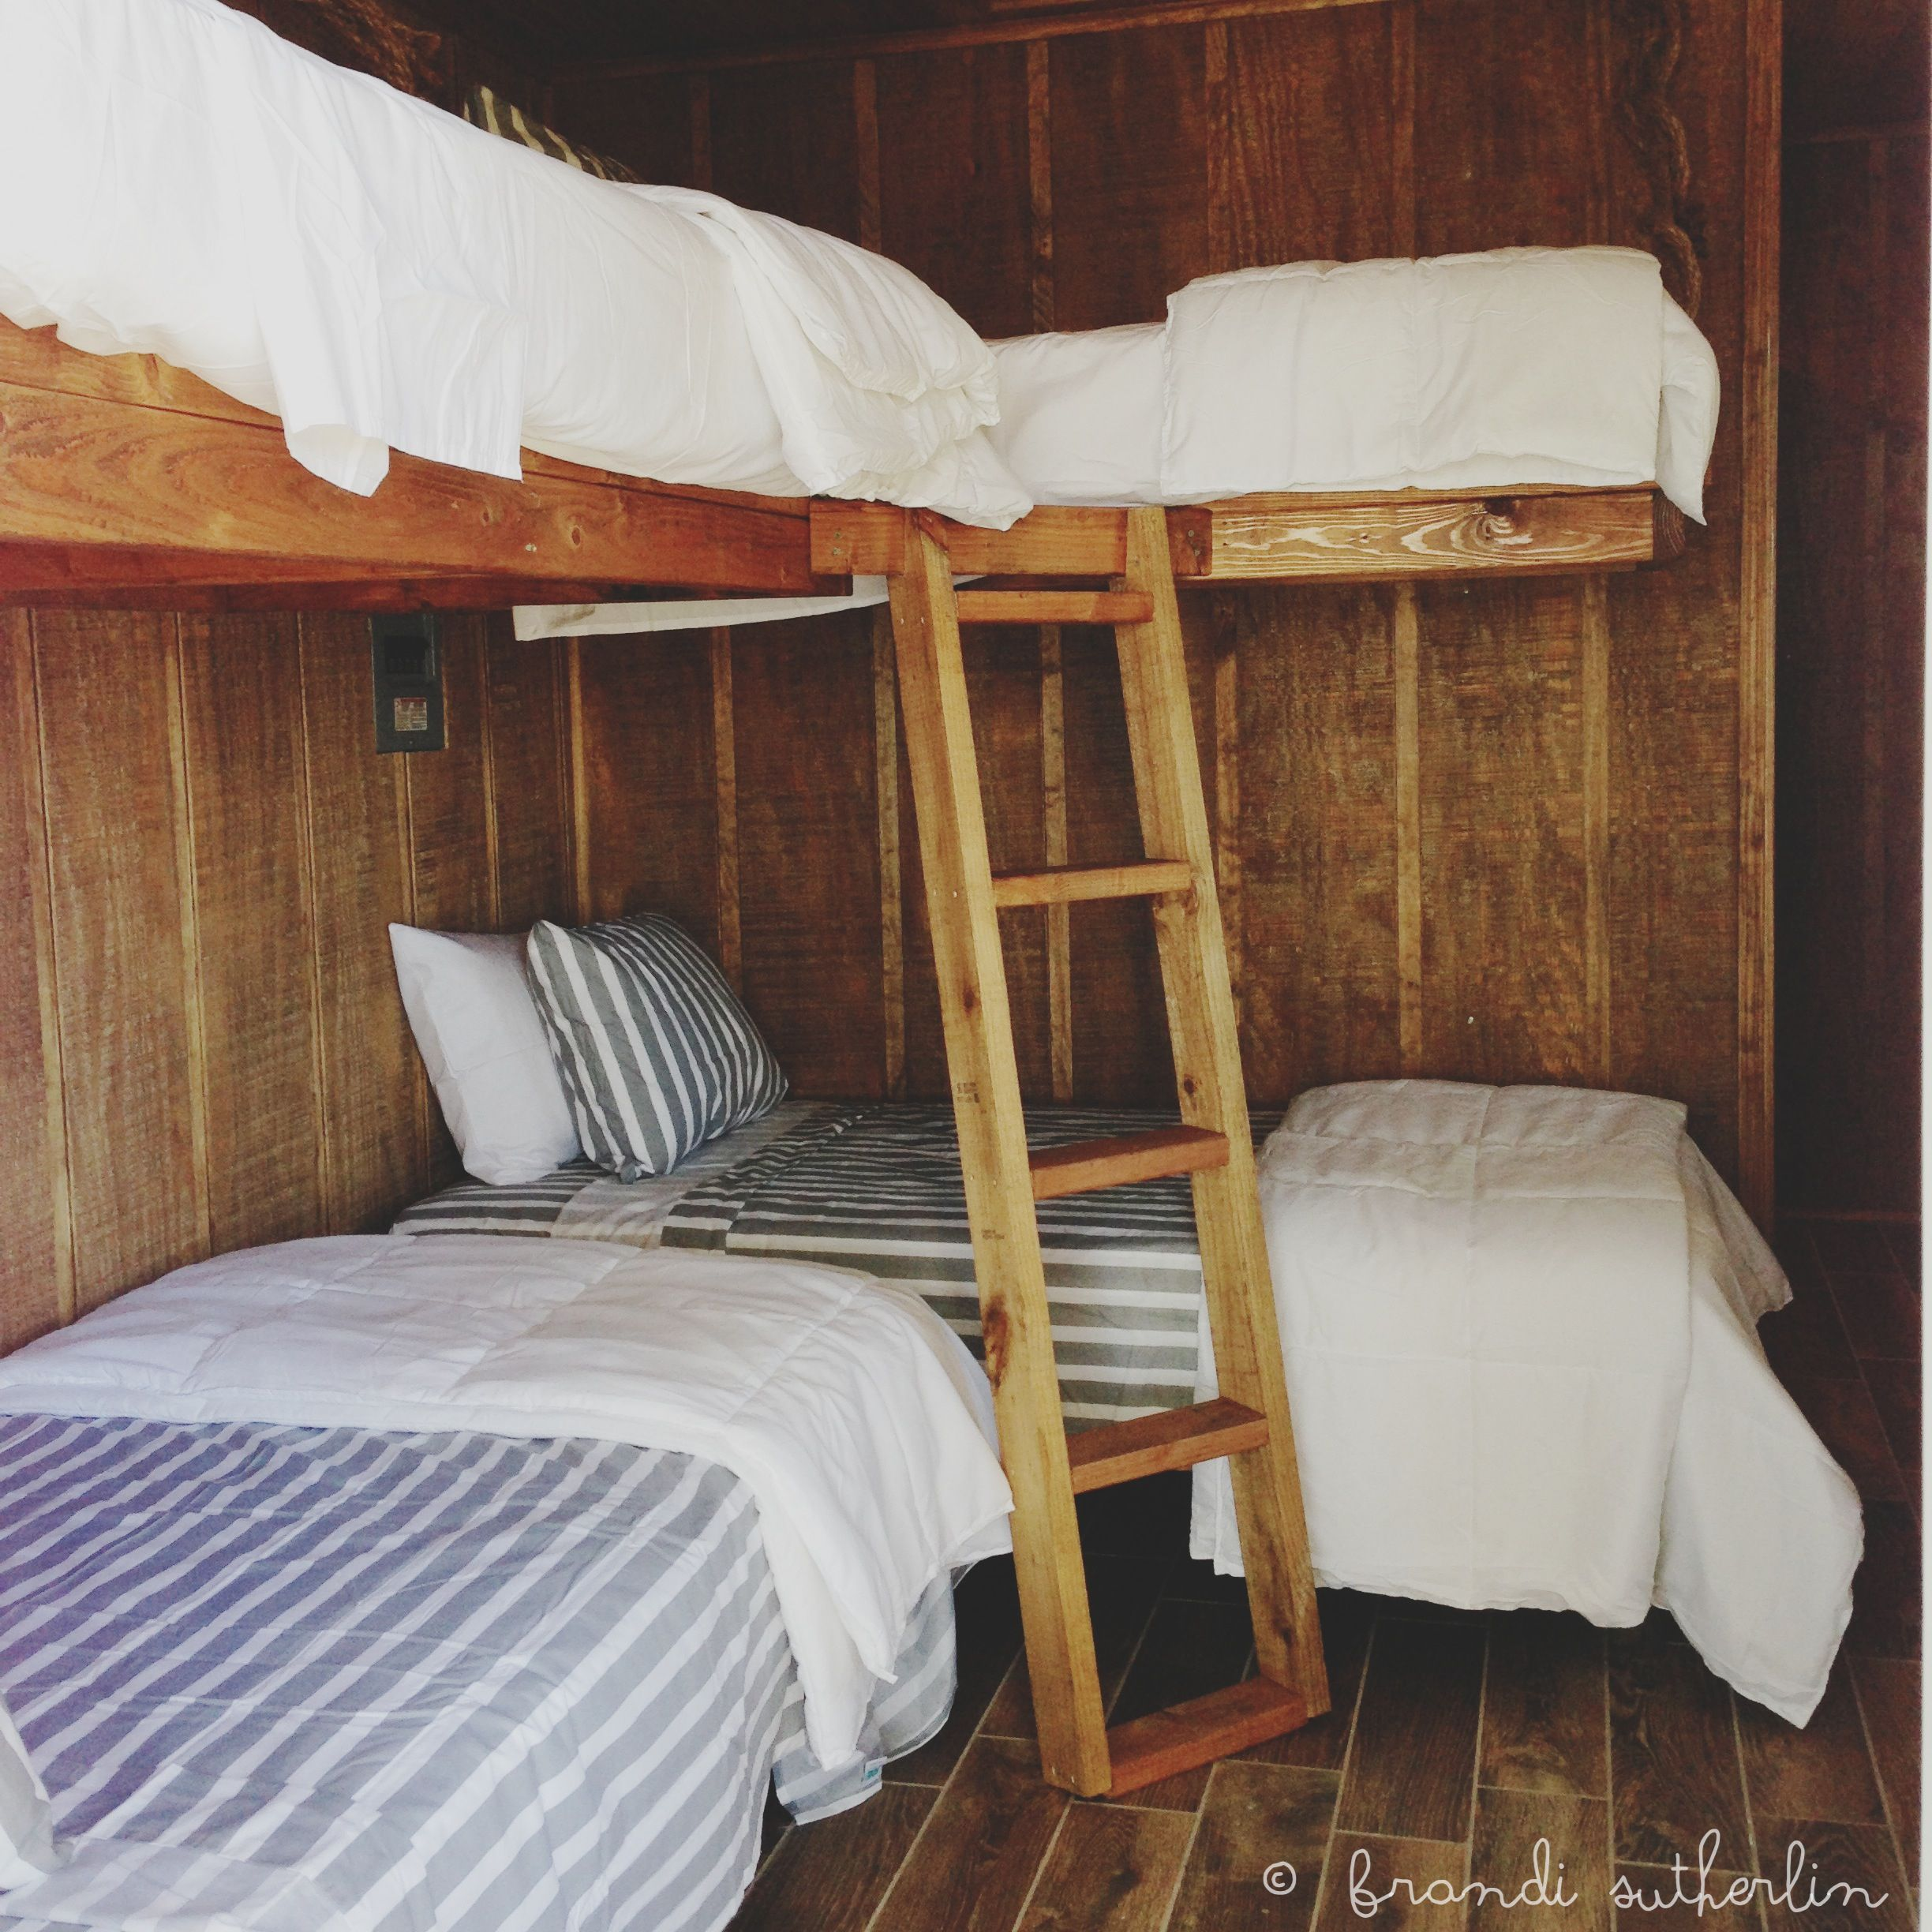 Bunkhouse Beds That My Hubby Built Done Love Bunkhouse